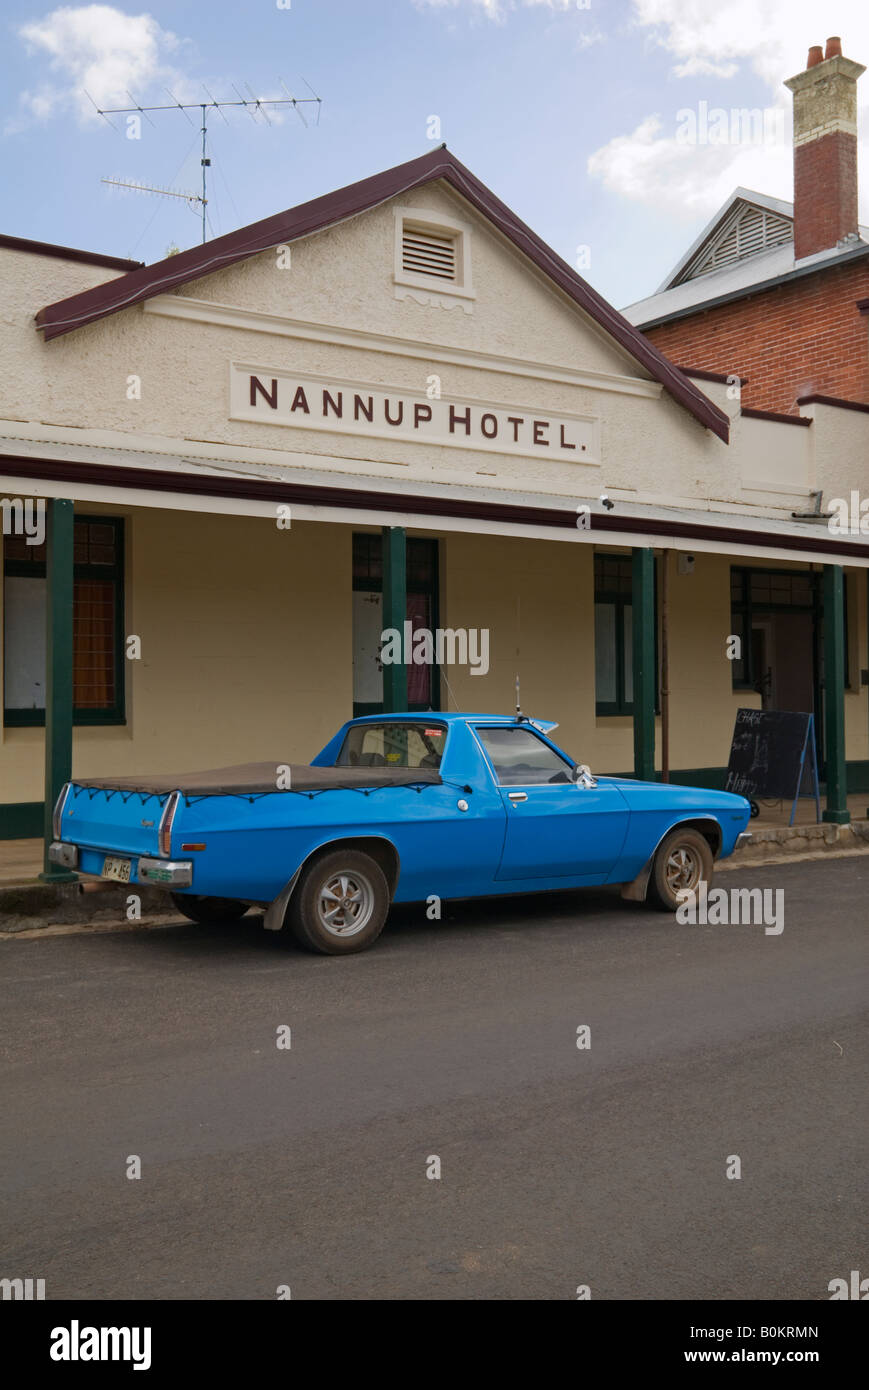 An old blue Holden Ute parked outside a traditional country town pub, Nannup, Western Australia - Stock Image